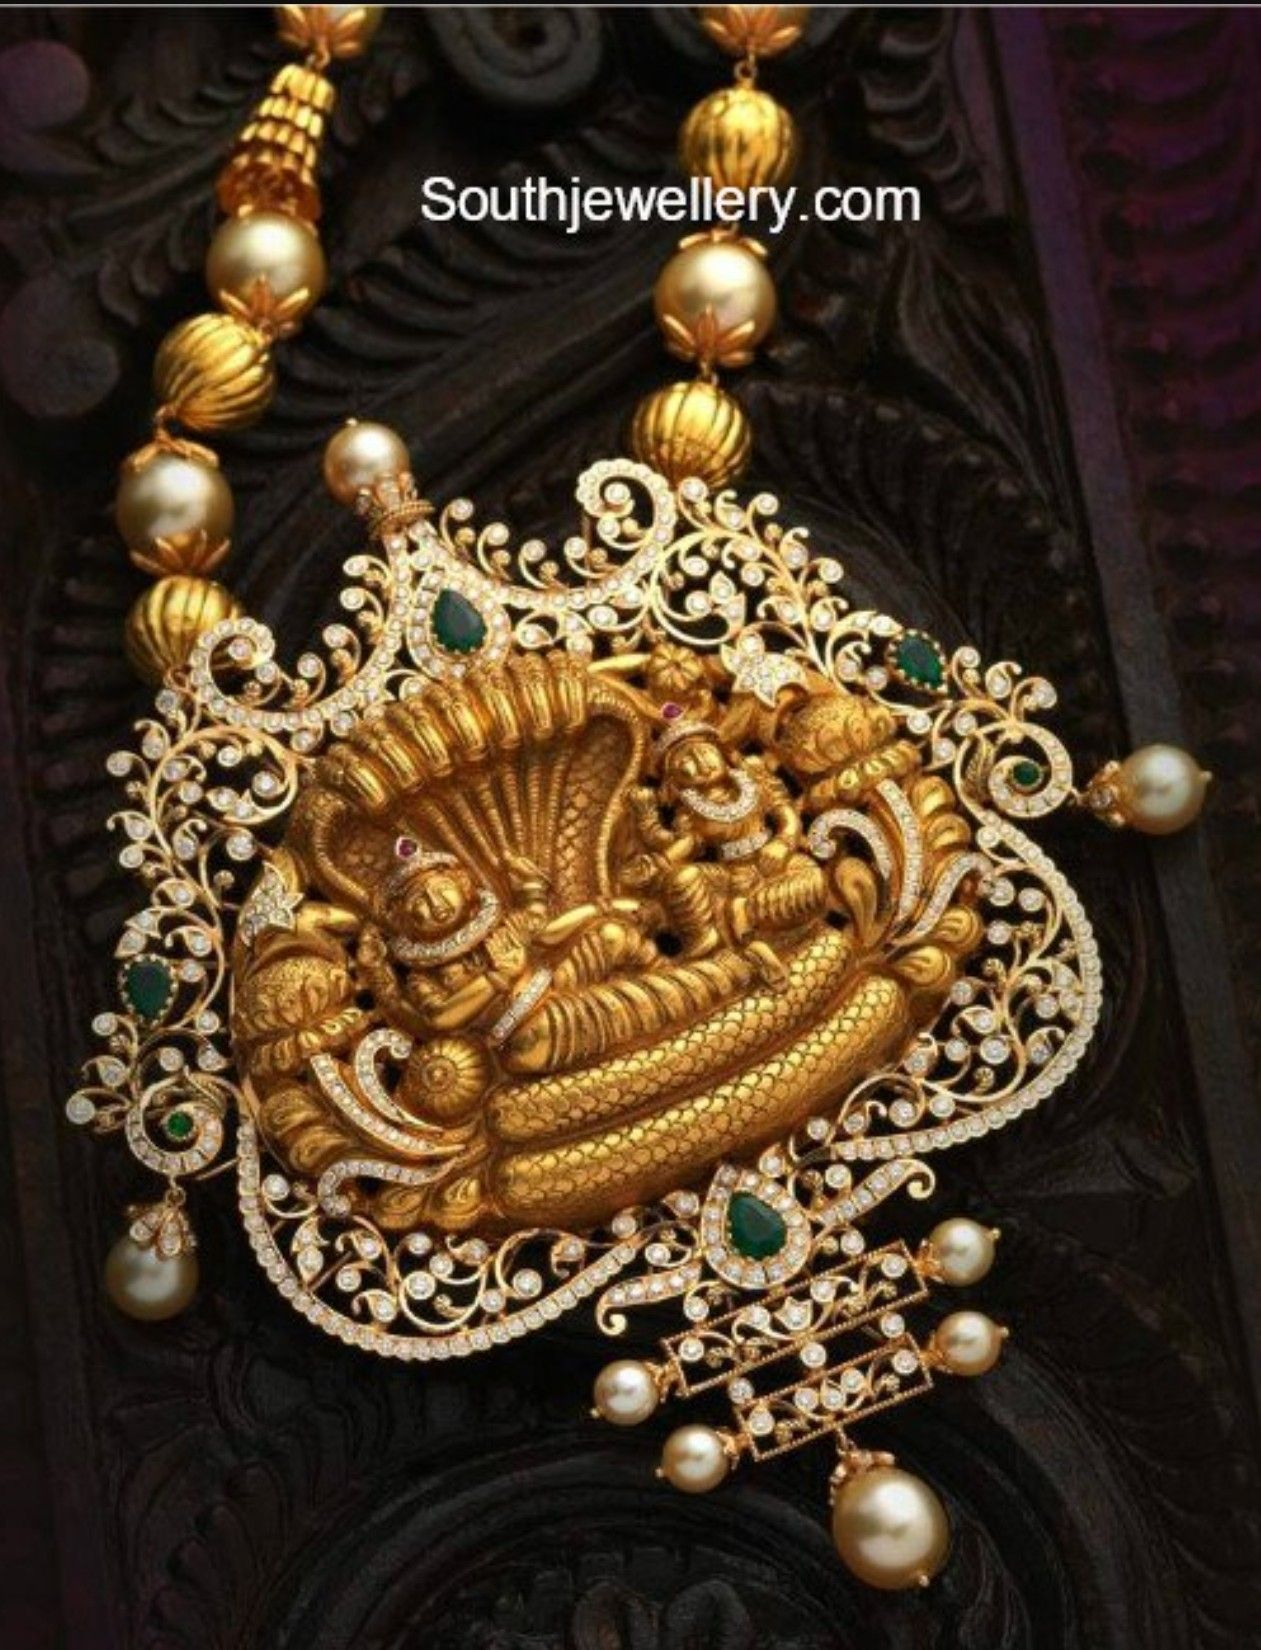 Pin by geeth gowda on gehne pinterest indian jewelry jewel and gold